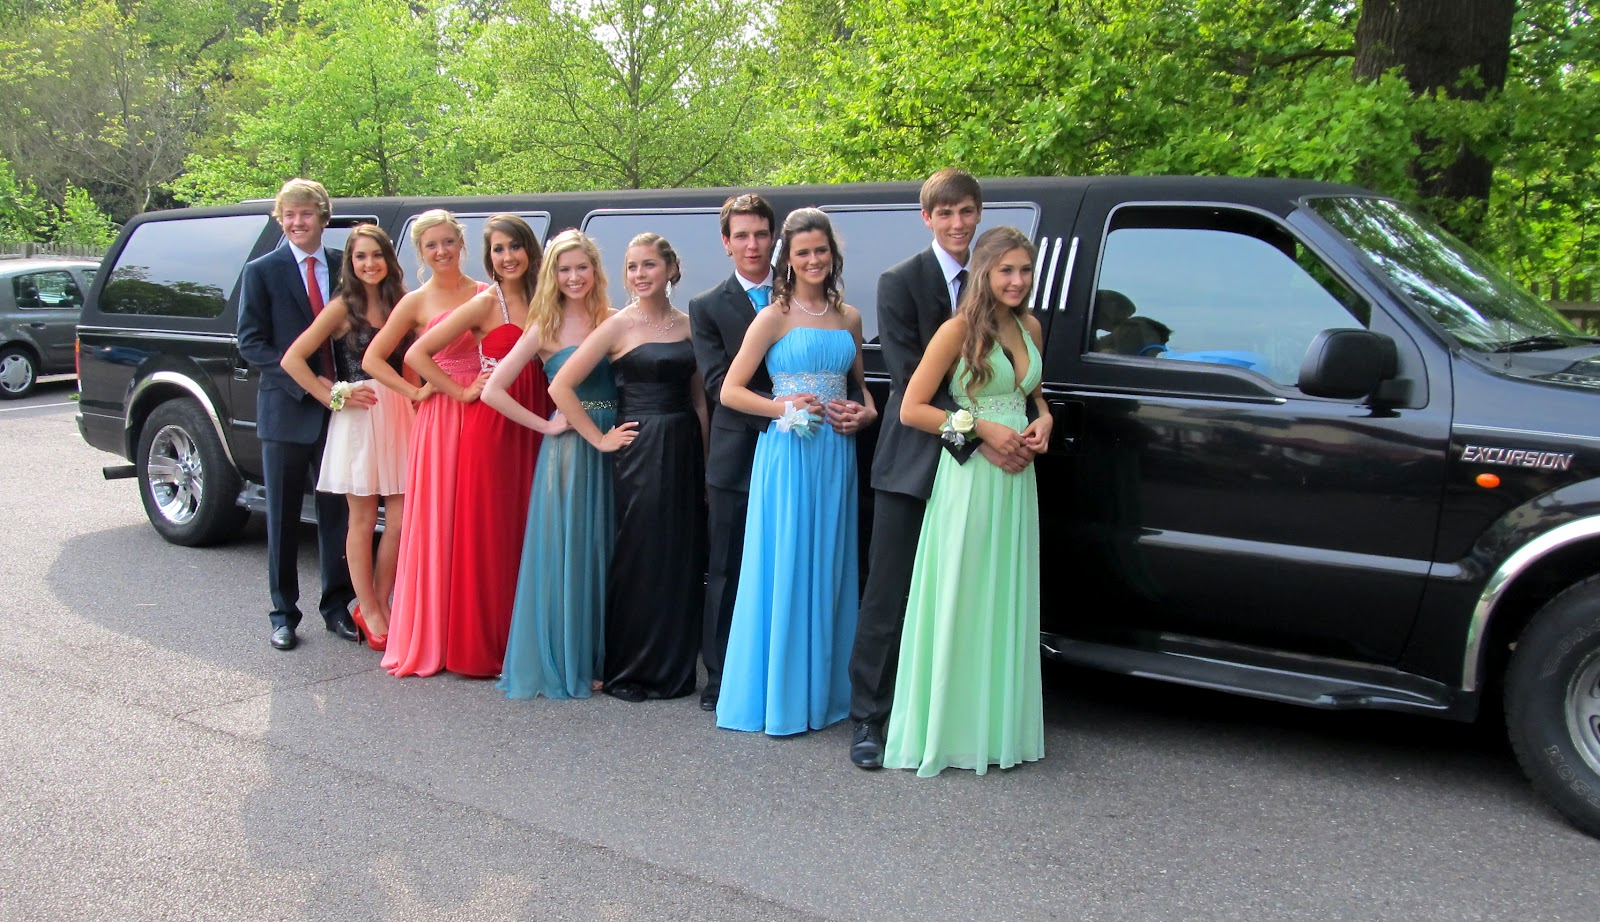 Best Prom Limo and Car Service in Arlington, Alexandria and Fairfax!